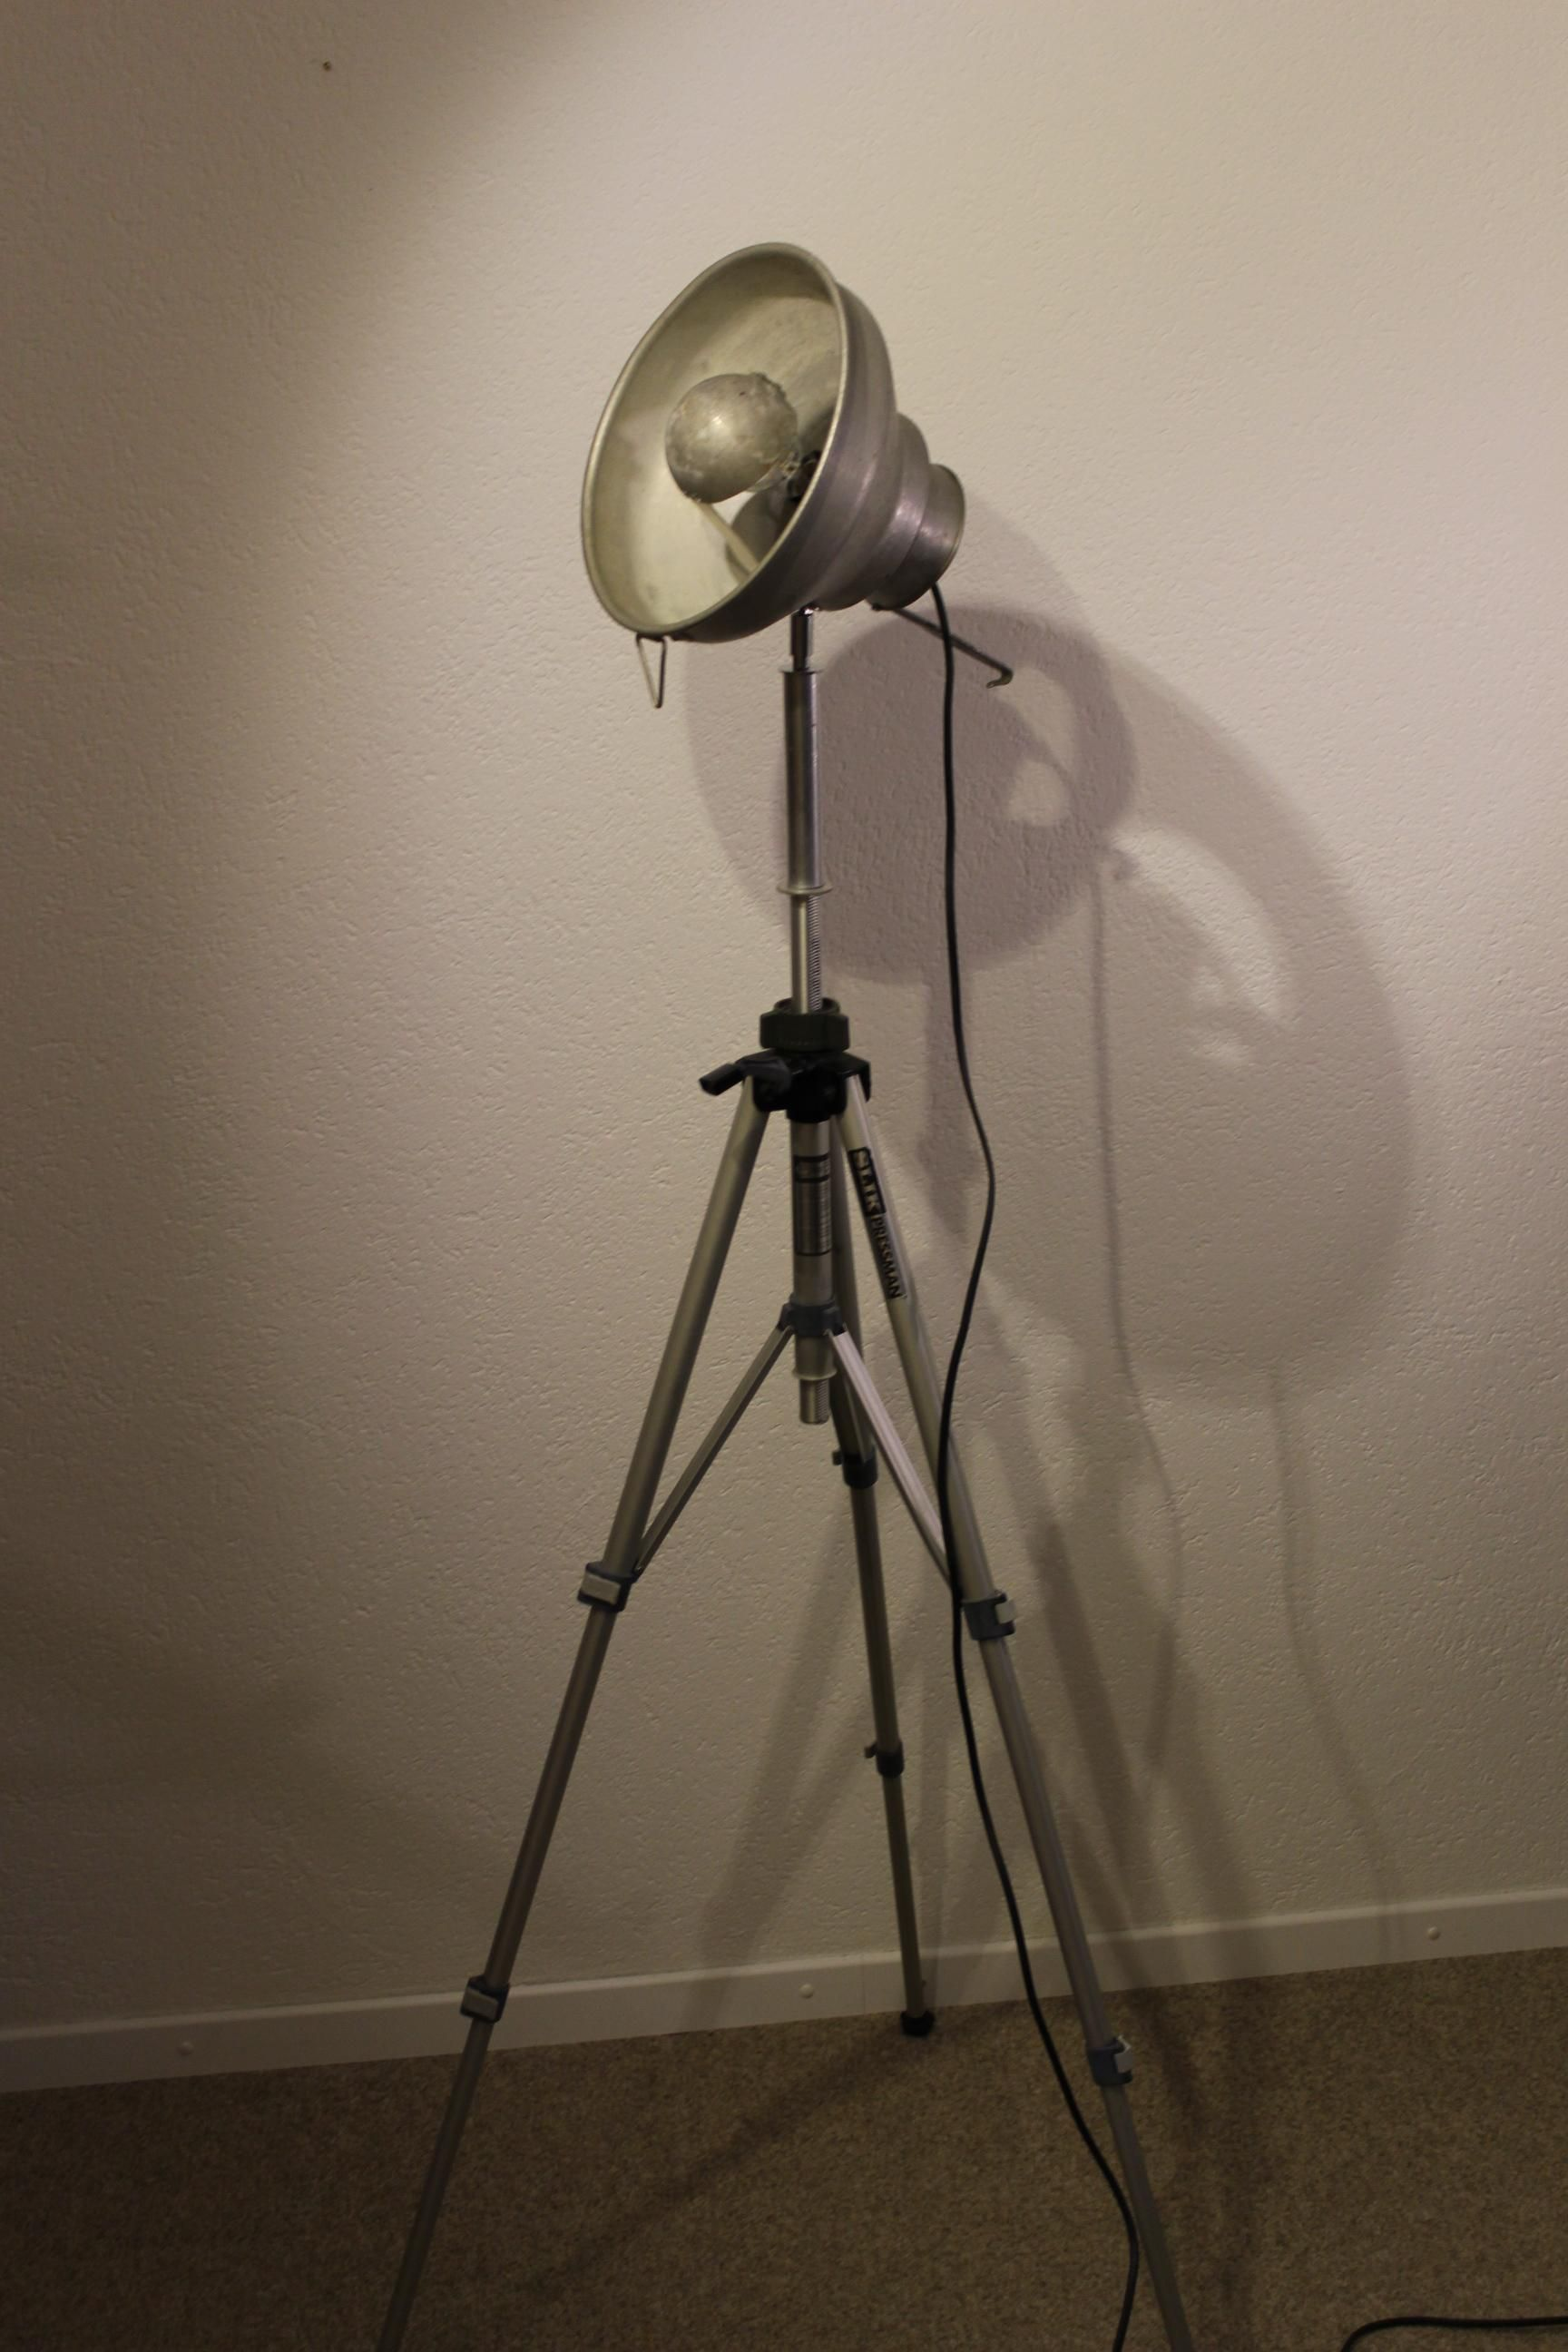 Inspirational Upcycling Lampen und Leuchten selber machen Lampenbau More cool recycling lamps on